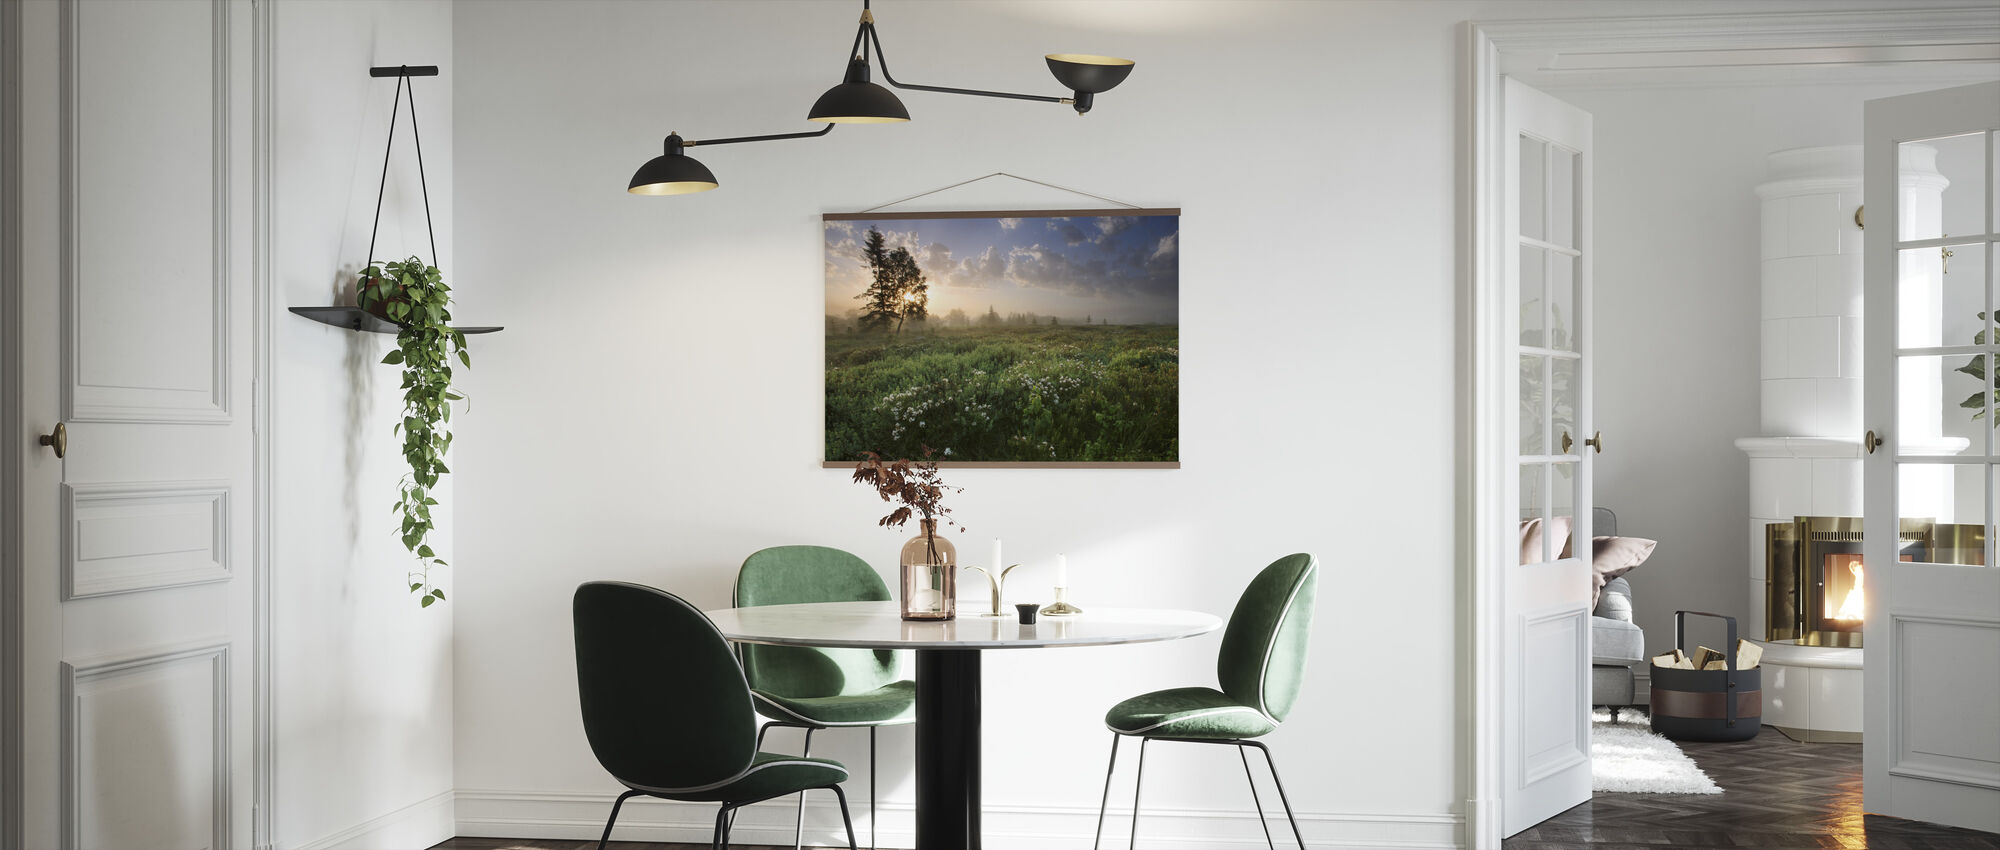 Delightful Meadow at Dawn - Poster - Kitchen